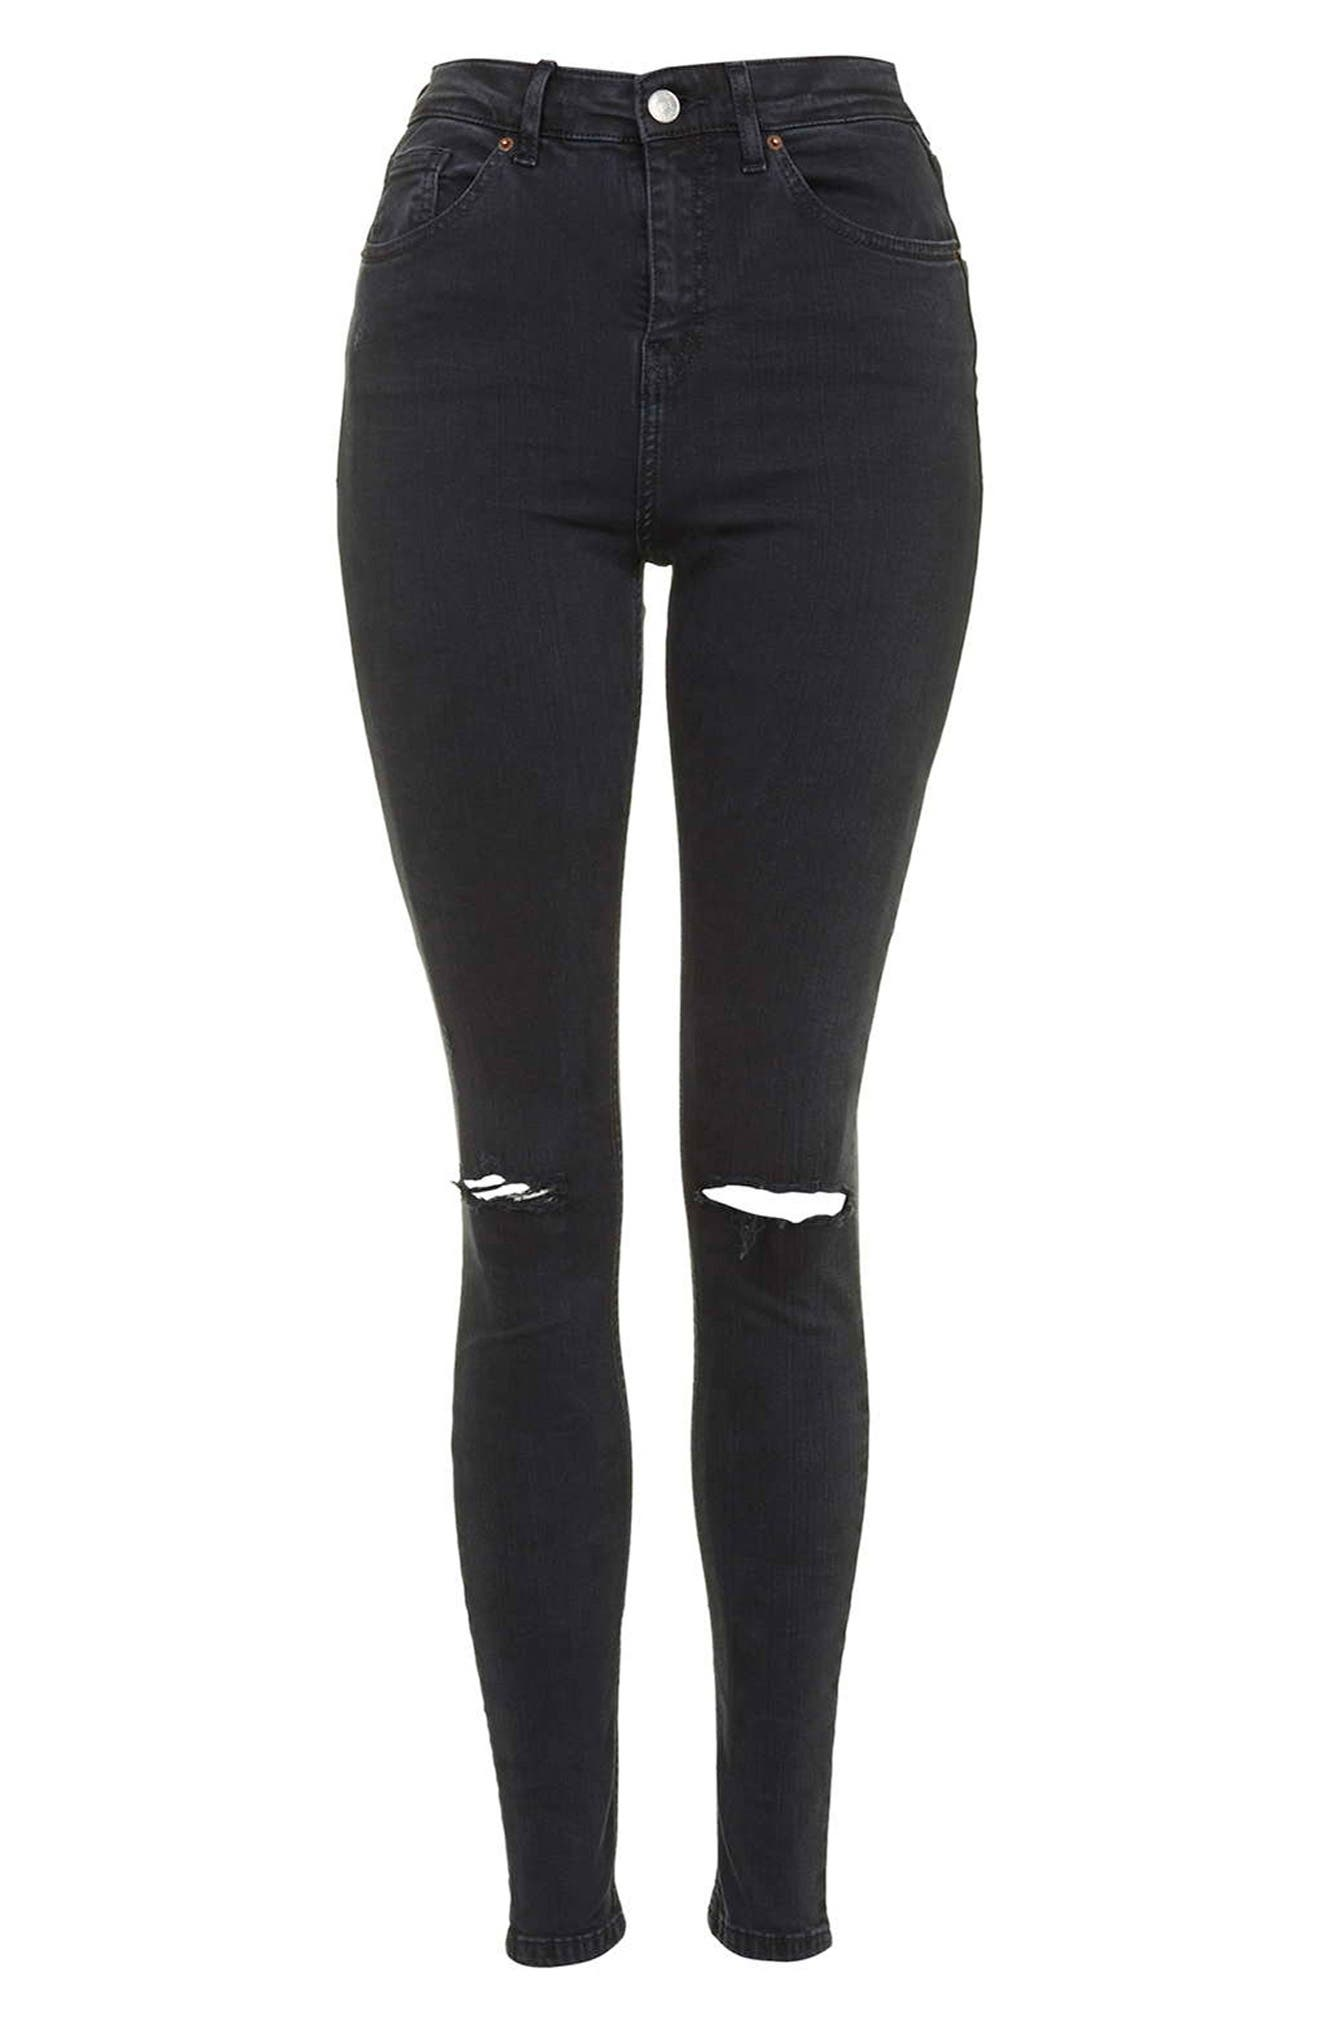 TOPSHOP,                             Moto 'Jamie' Ripped Skinny Jeans,                             Alternate thumbnail 2, color,                             001